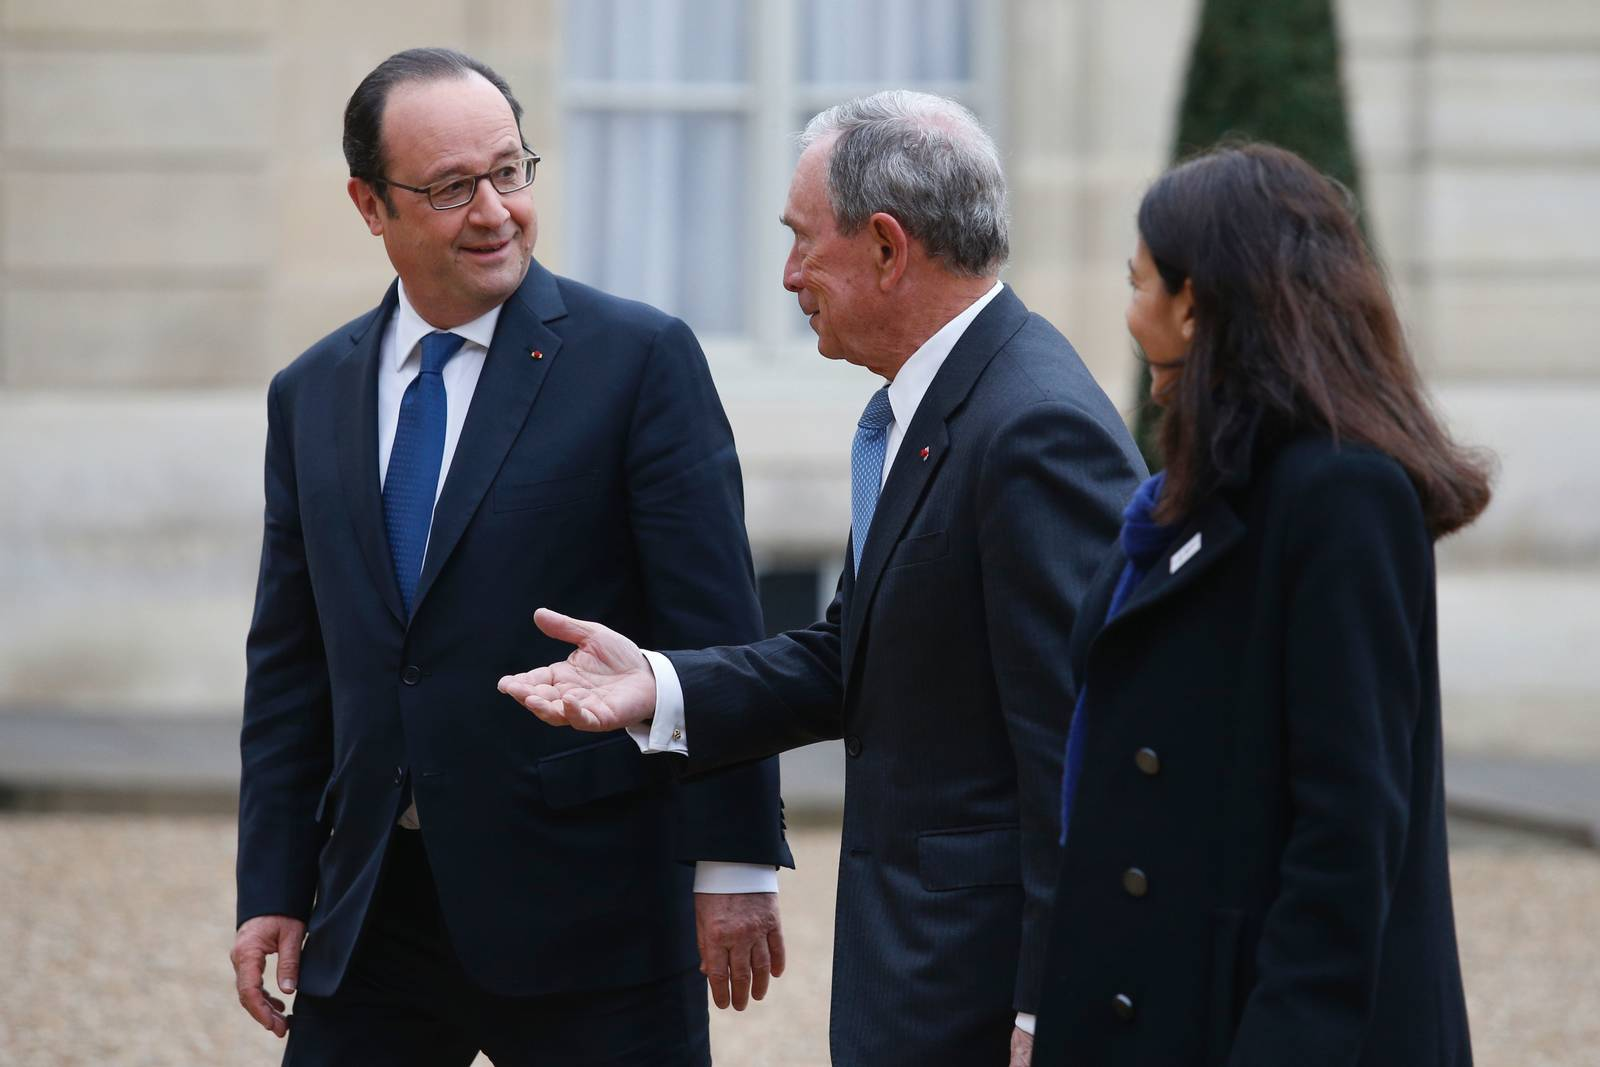 Michael Bloomberg, former mayor of New York, met with French President Francois Hollande and Paris Mayor Anne Hidalgo